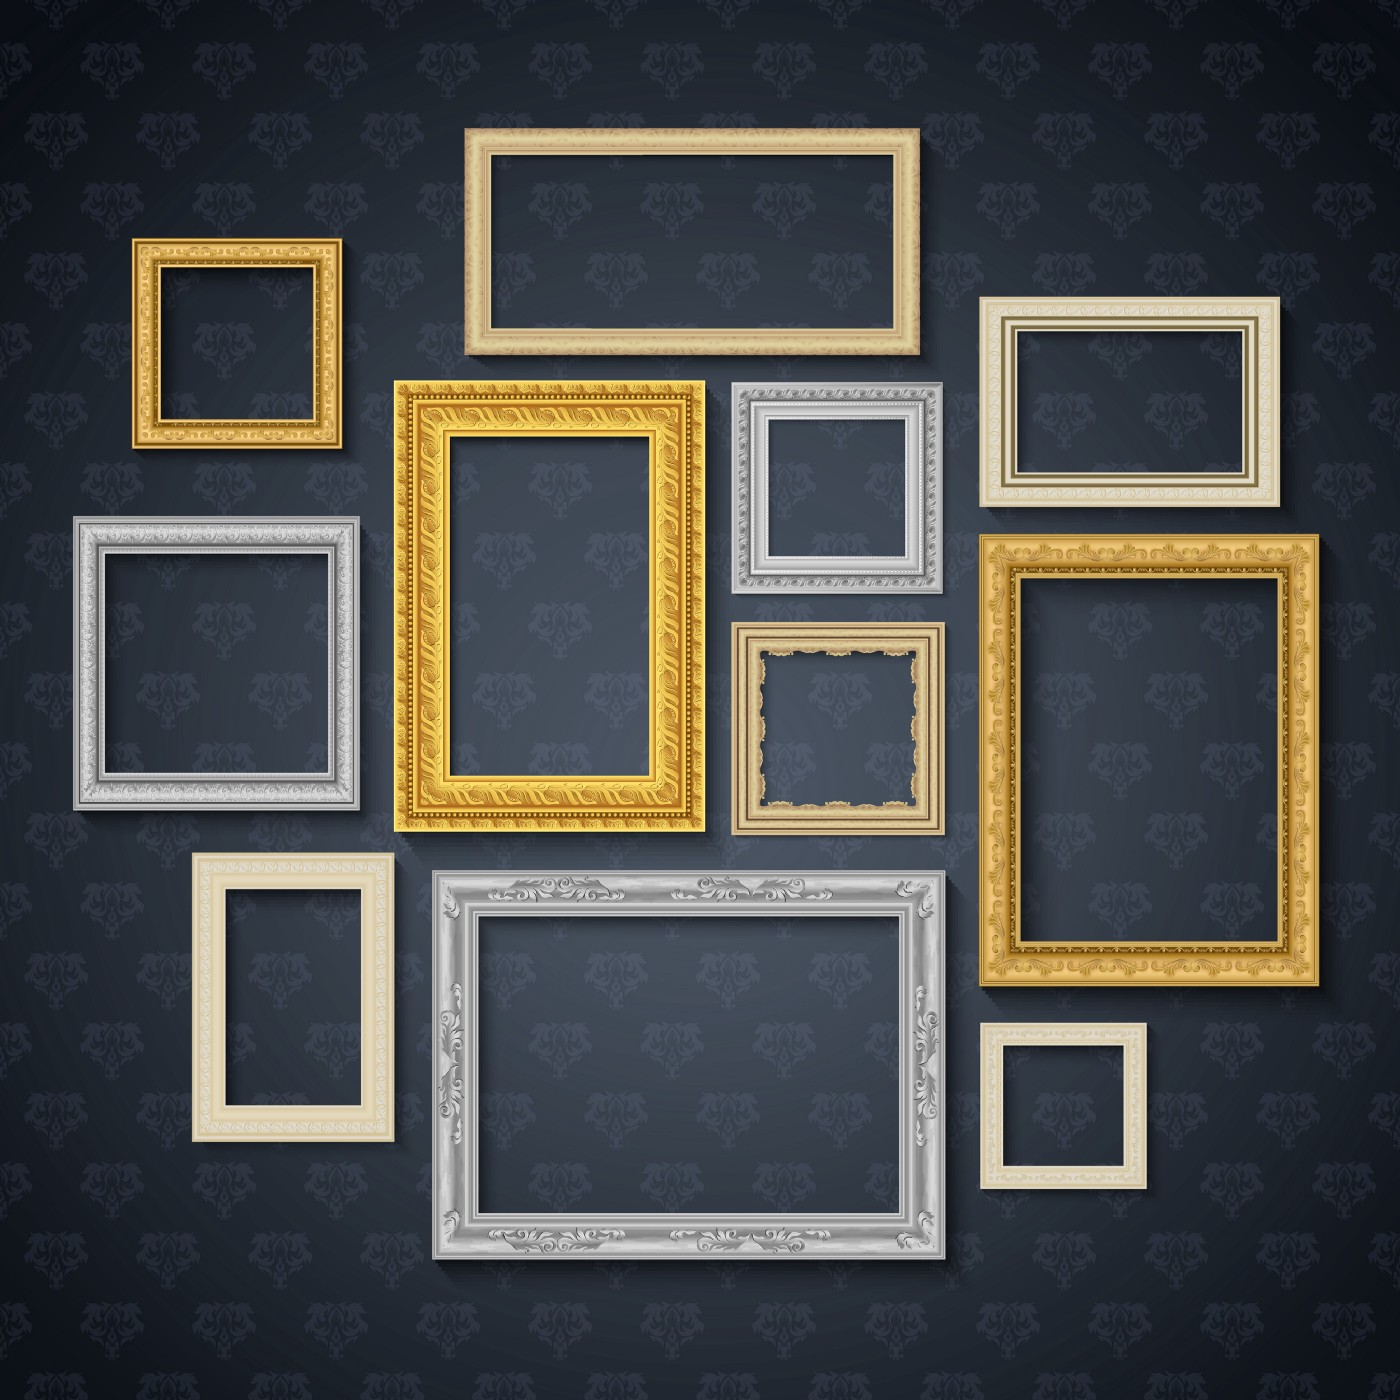 Display of frames of different sizes, orientations, and colors on a wall with a dark grey wallpaper